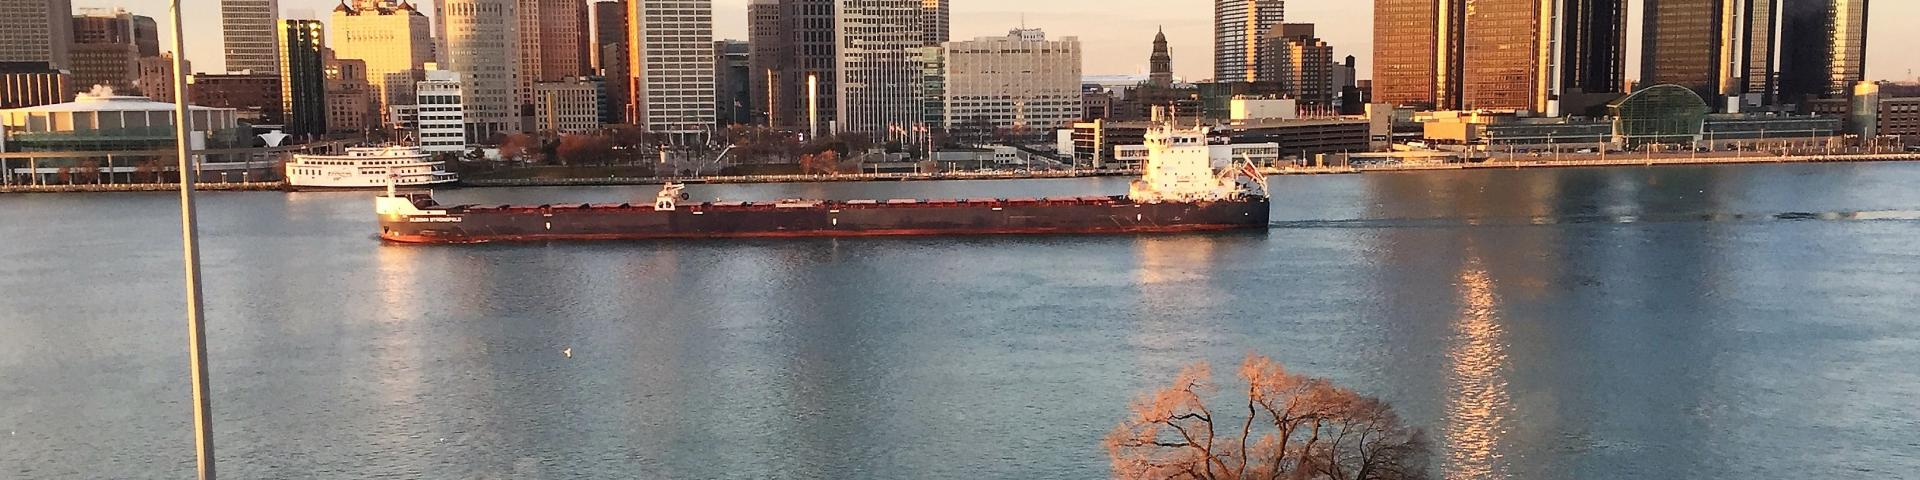 Detroit River with ship